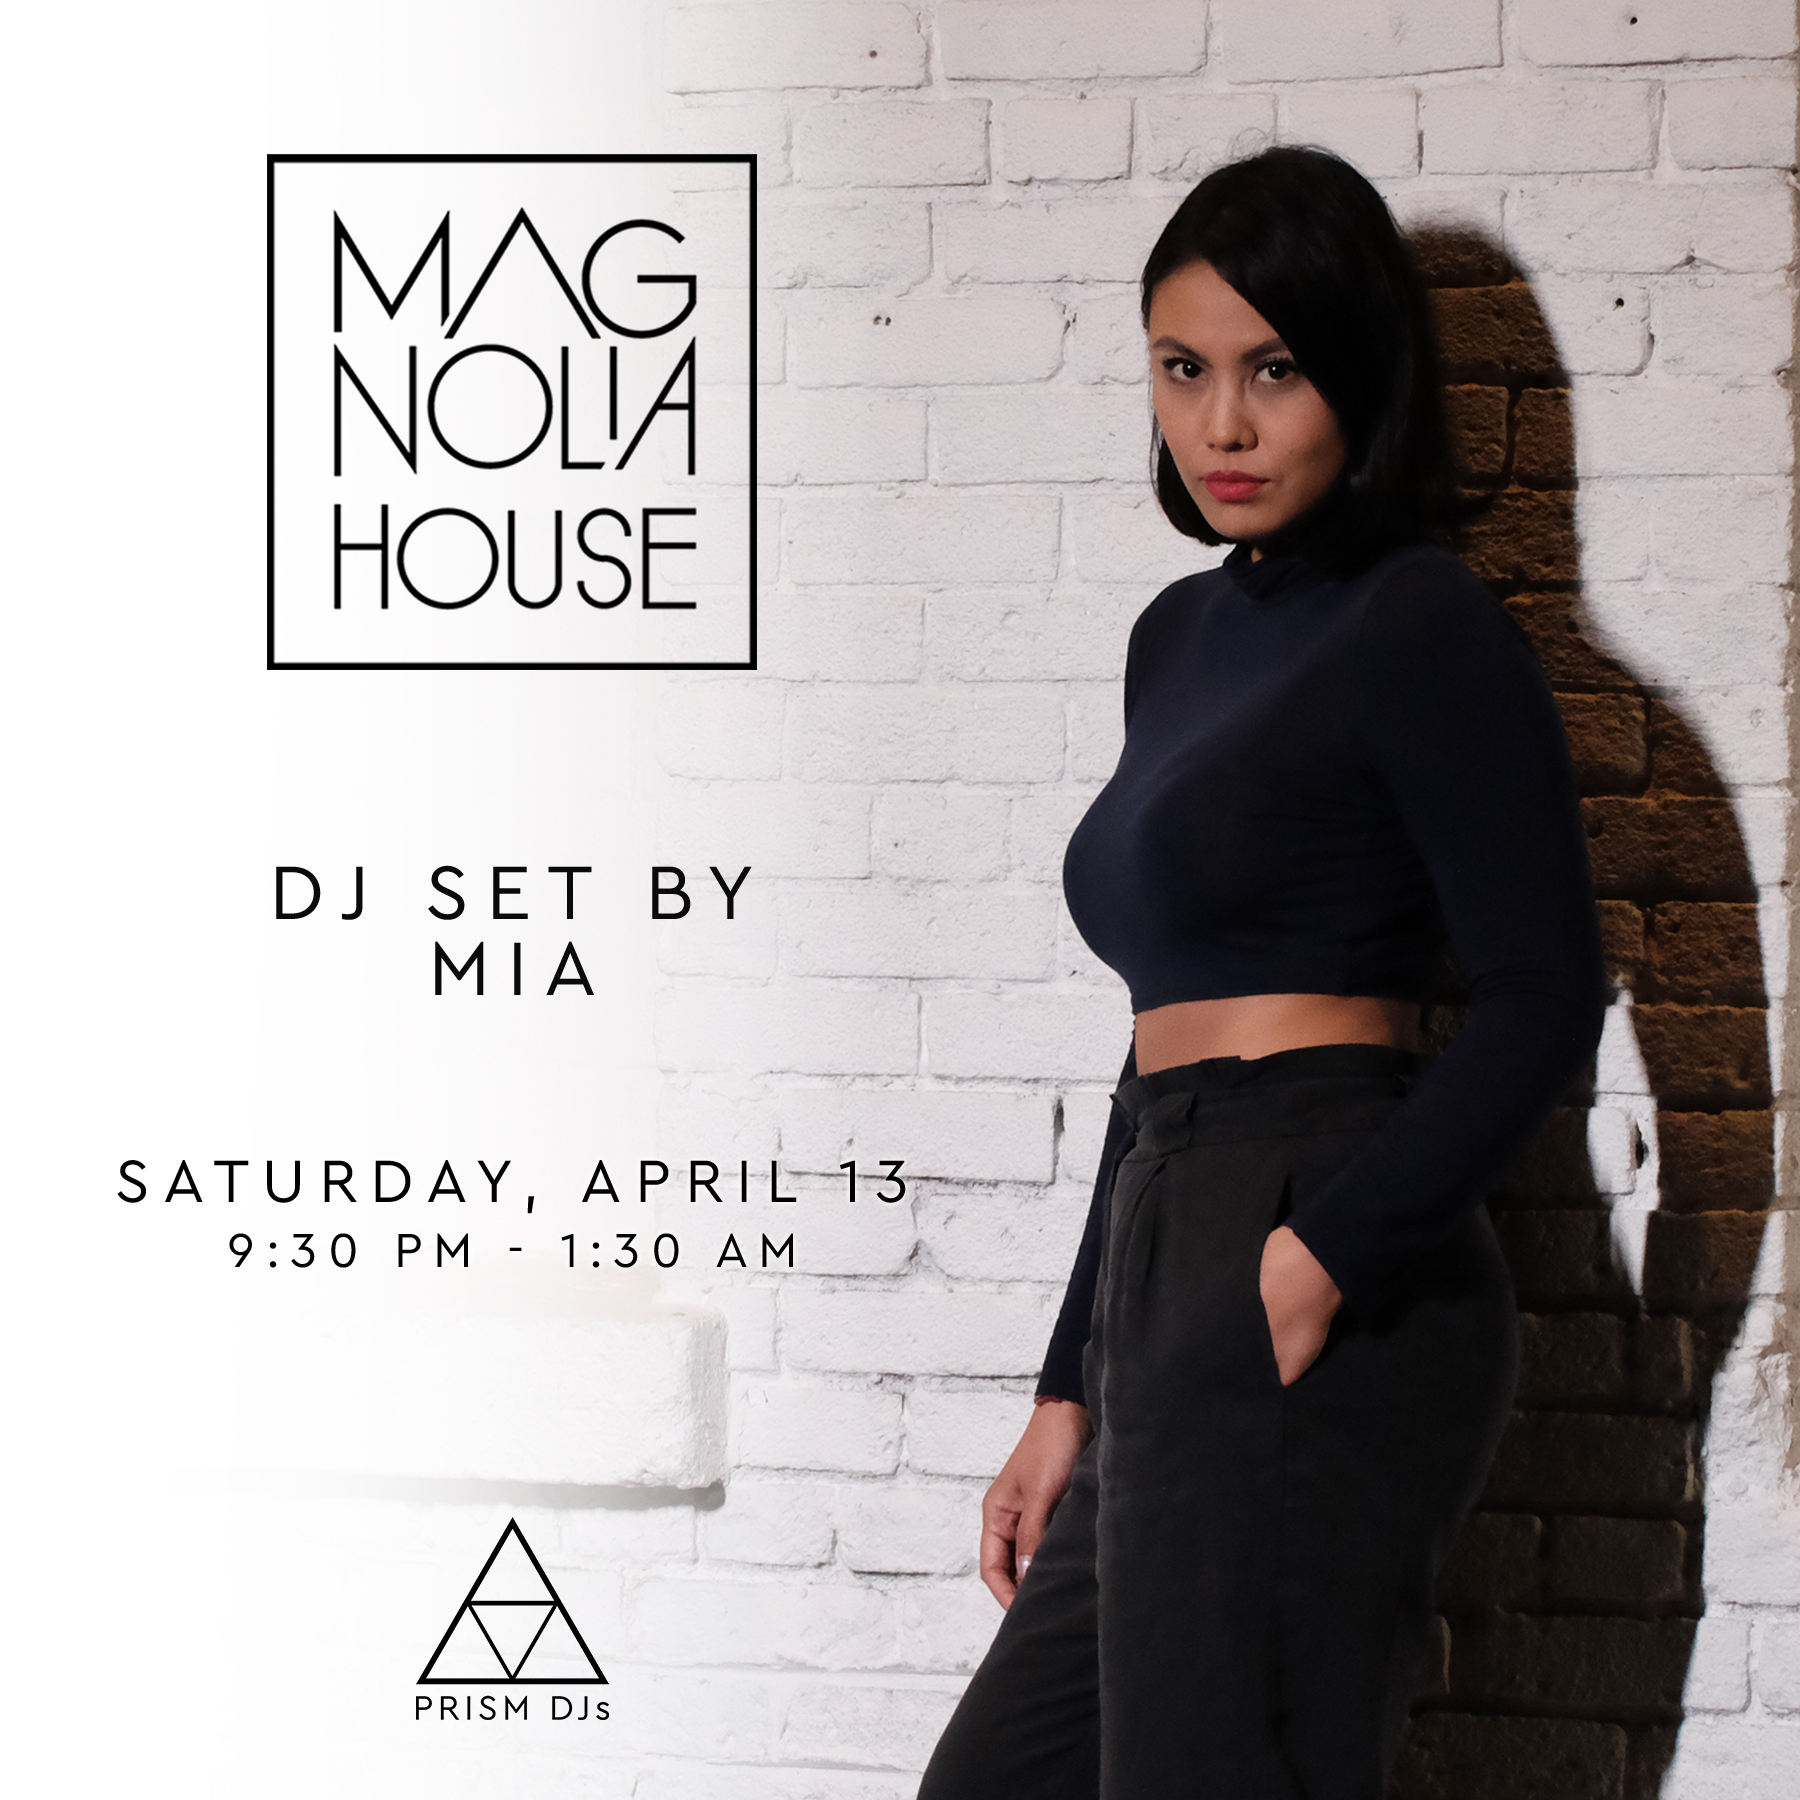 DJ Mia Female DJ Los Angeles Magnolia House.jpg